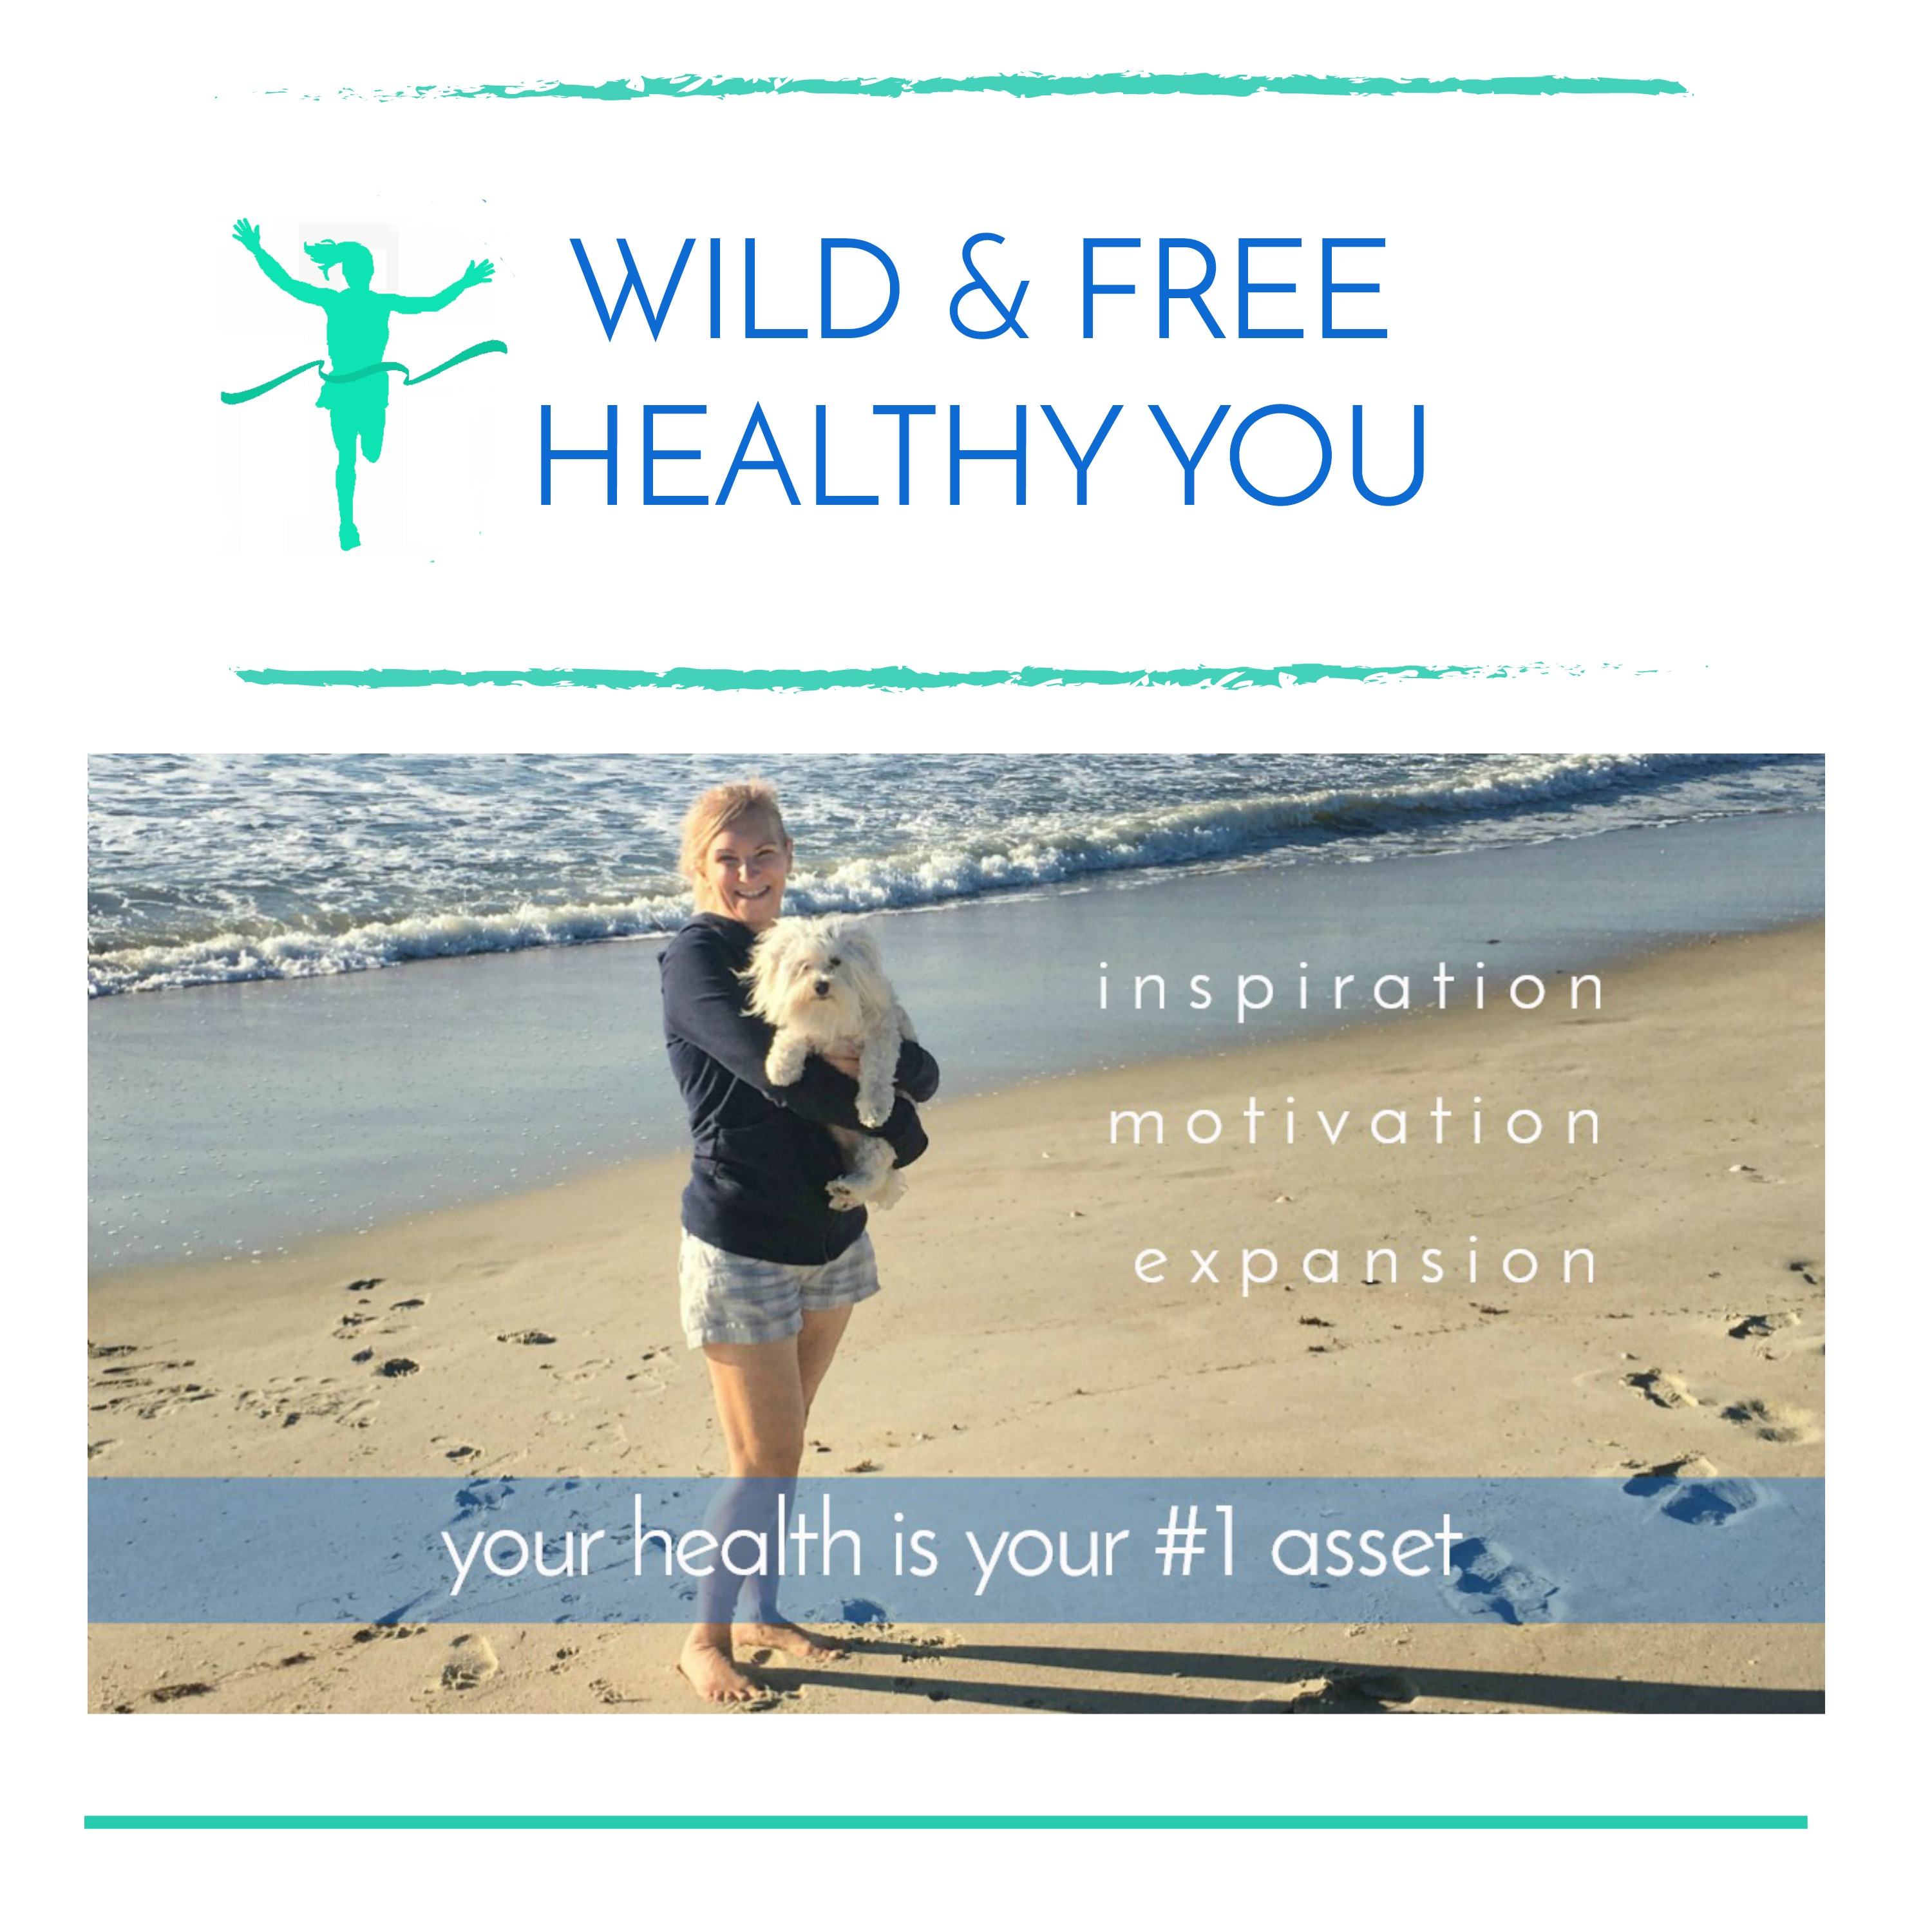 WILD & FREE HEALTHY YOU